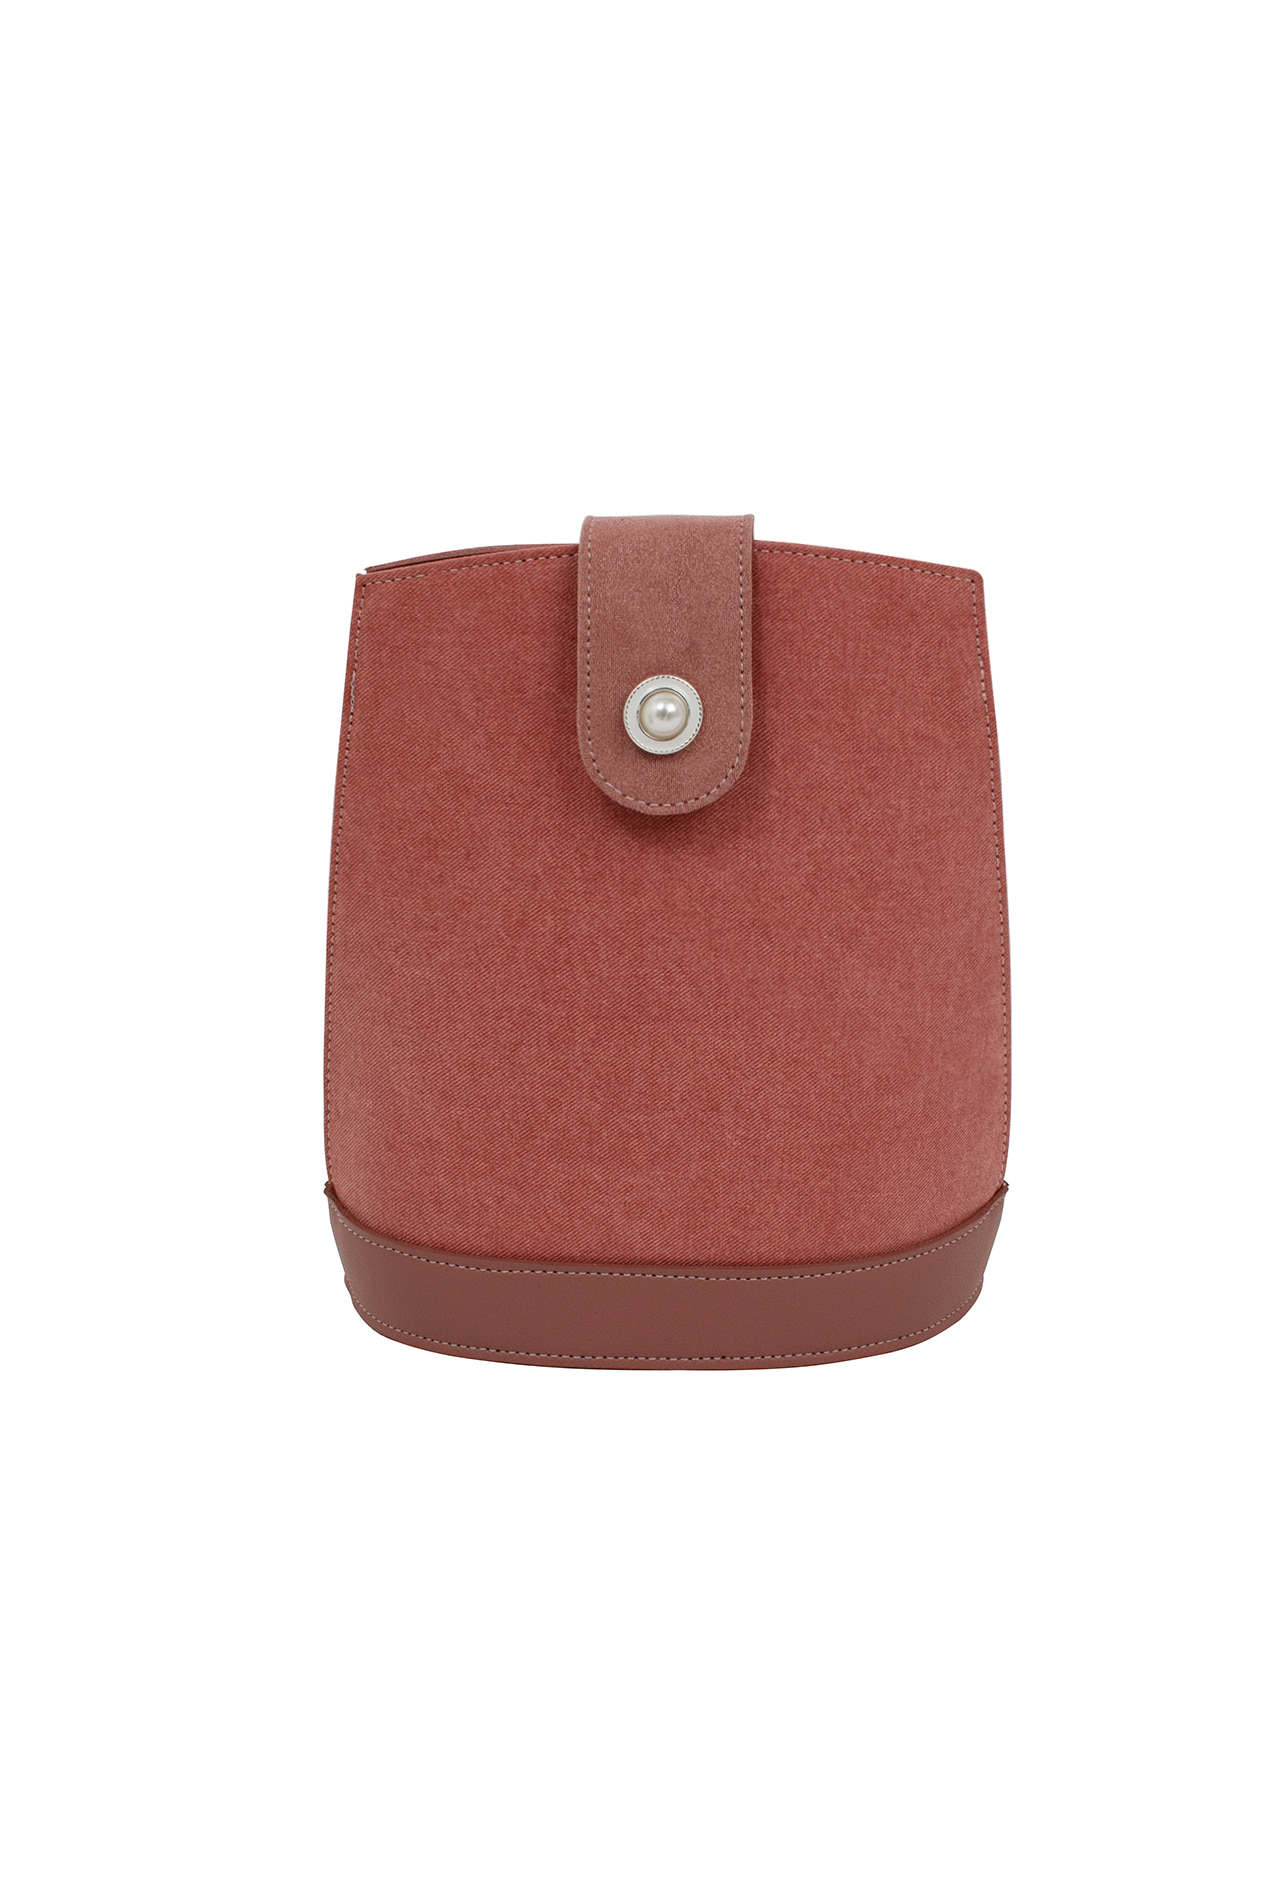 Malila mini bag (vintage red)